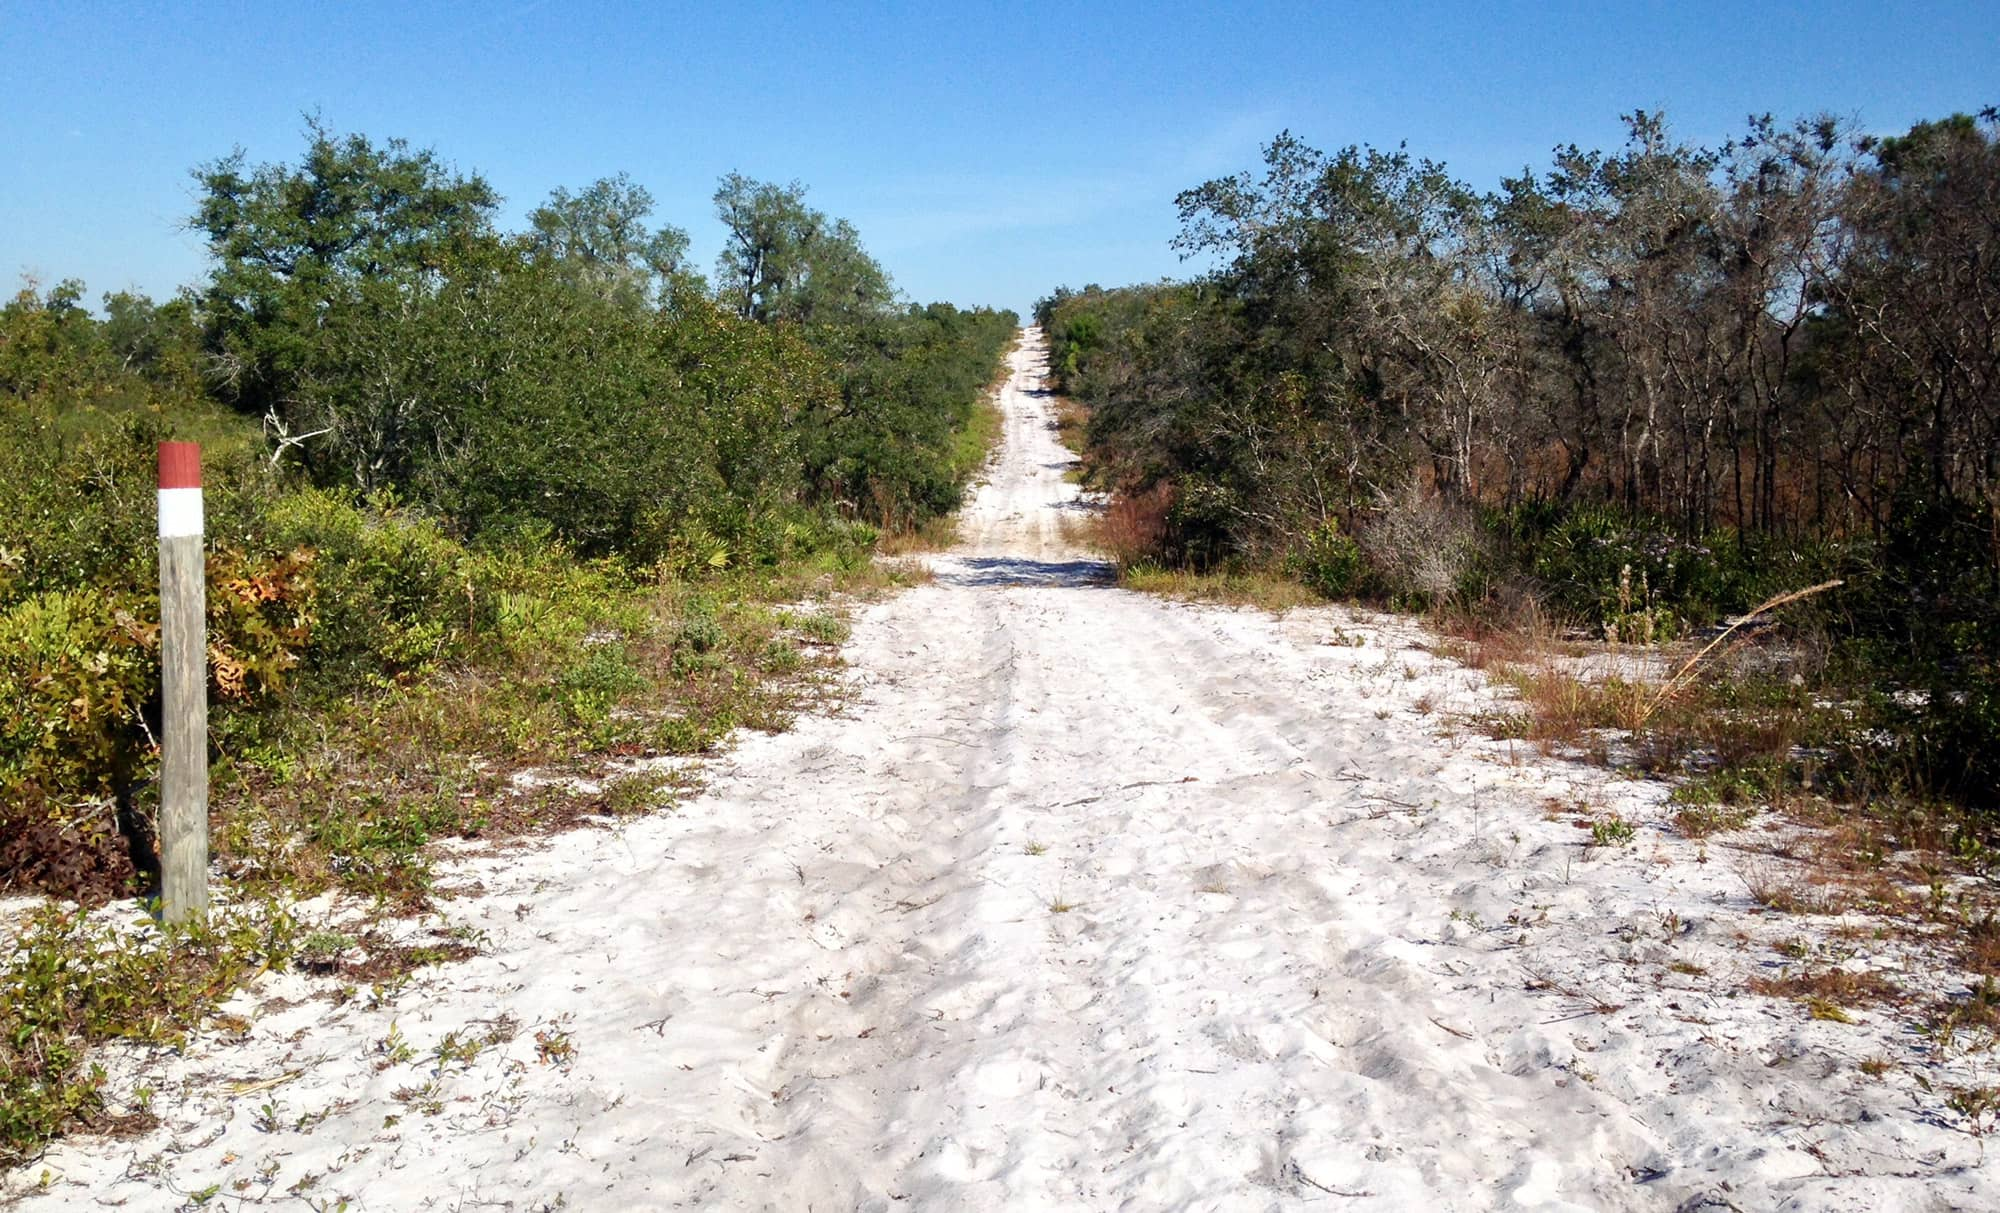 Sandy hiking path showing elevation change at Allen David Broussard Catfish Creek Preserve State Park in Haines City, FL